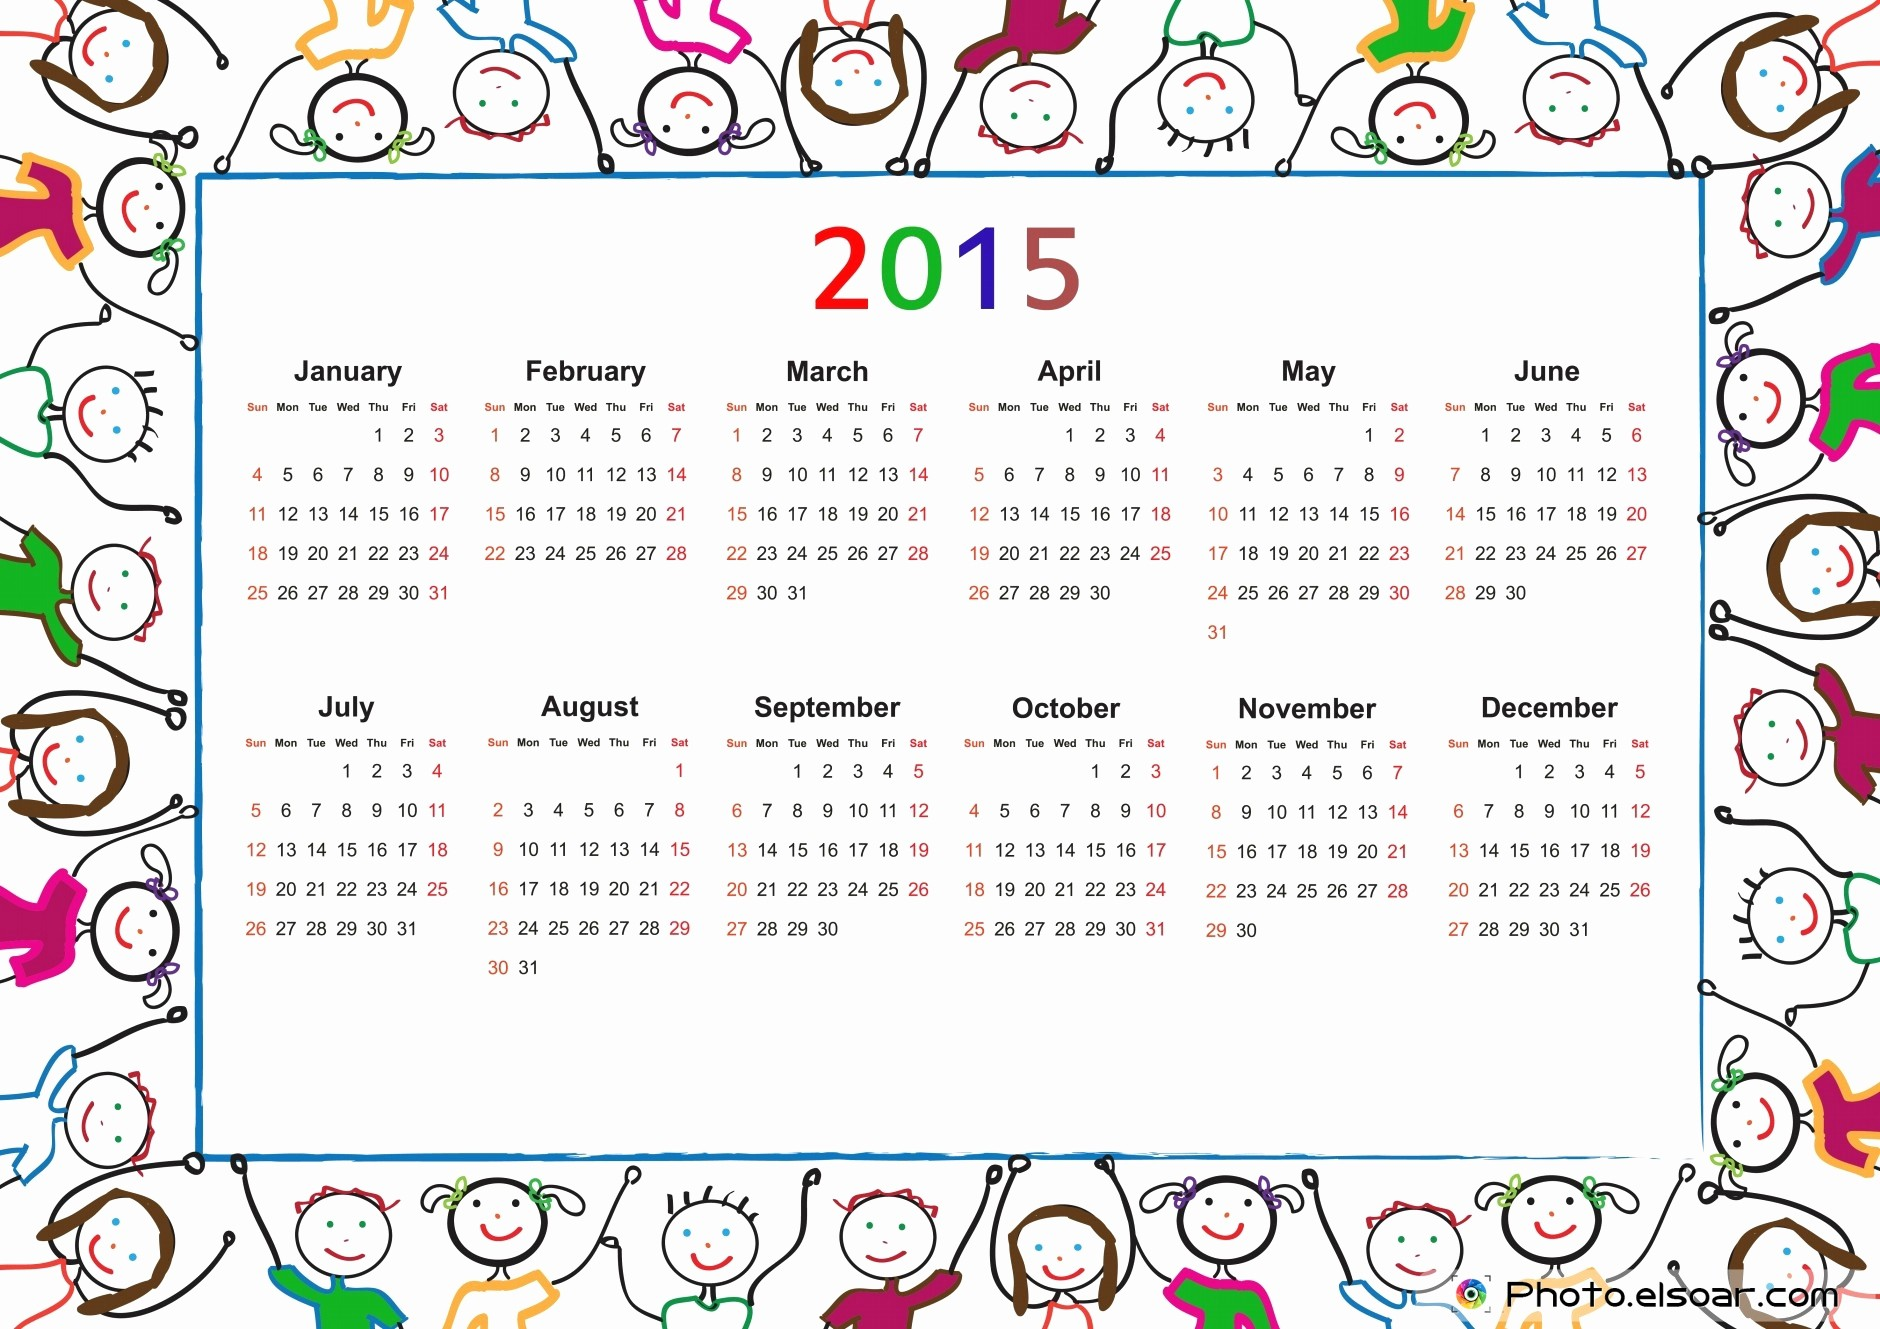 Free 2015 Yearly Calendar Template New Free 2015 Printable Calendar for Kids Elsoar